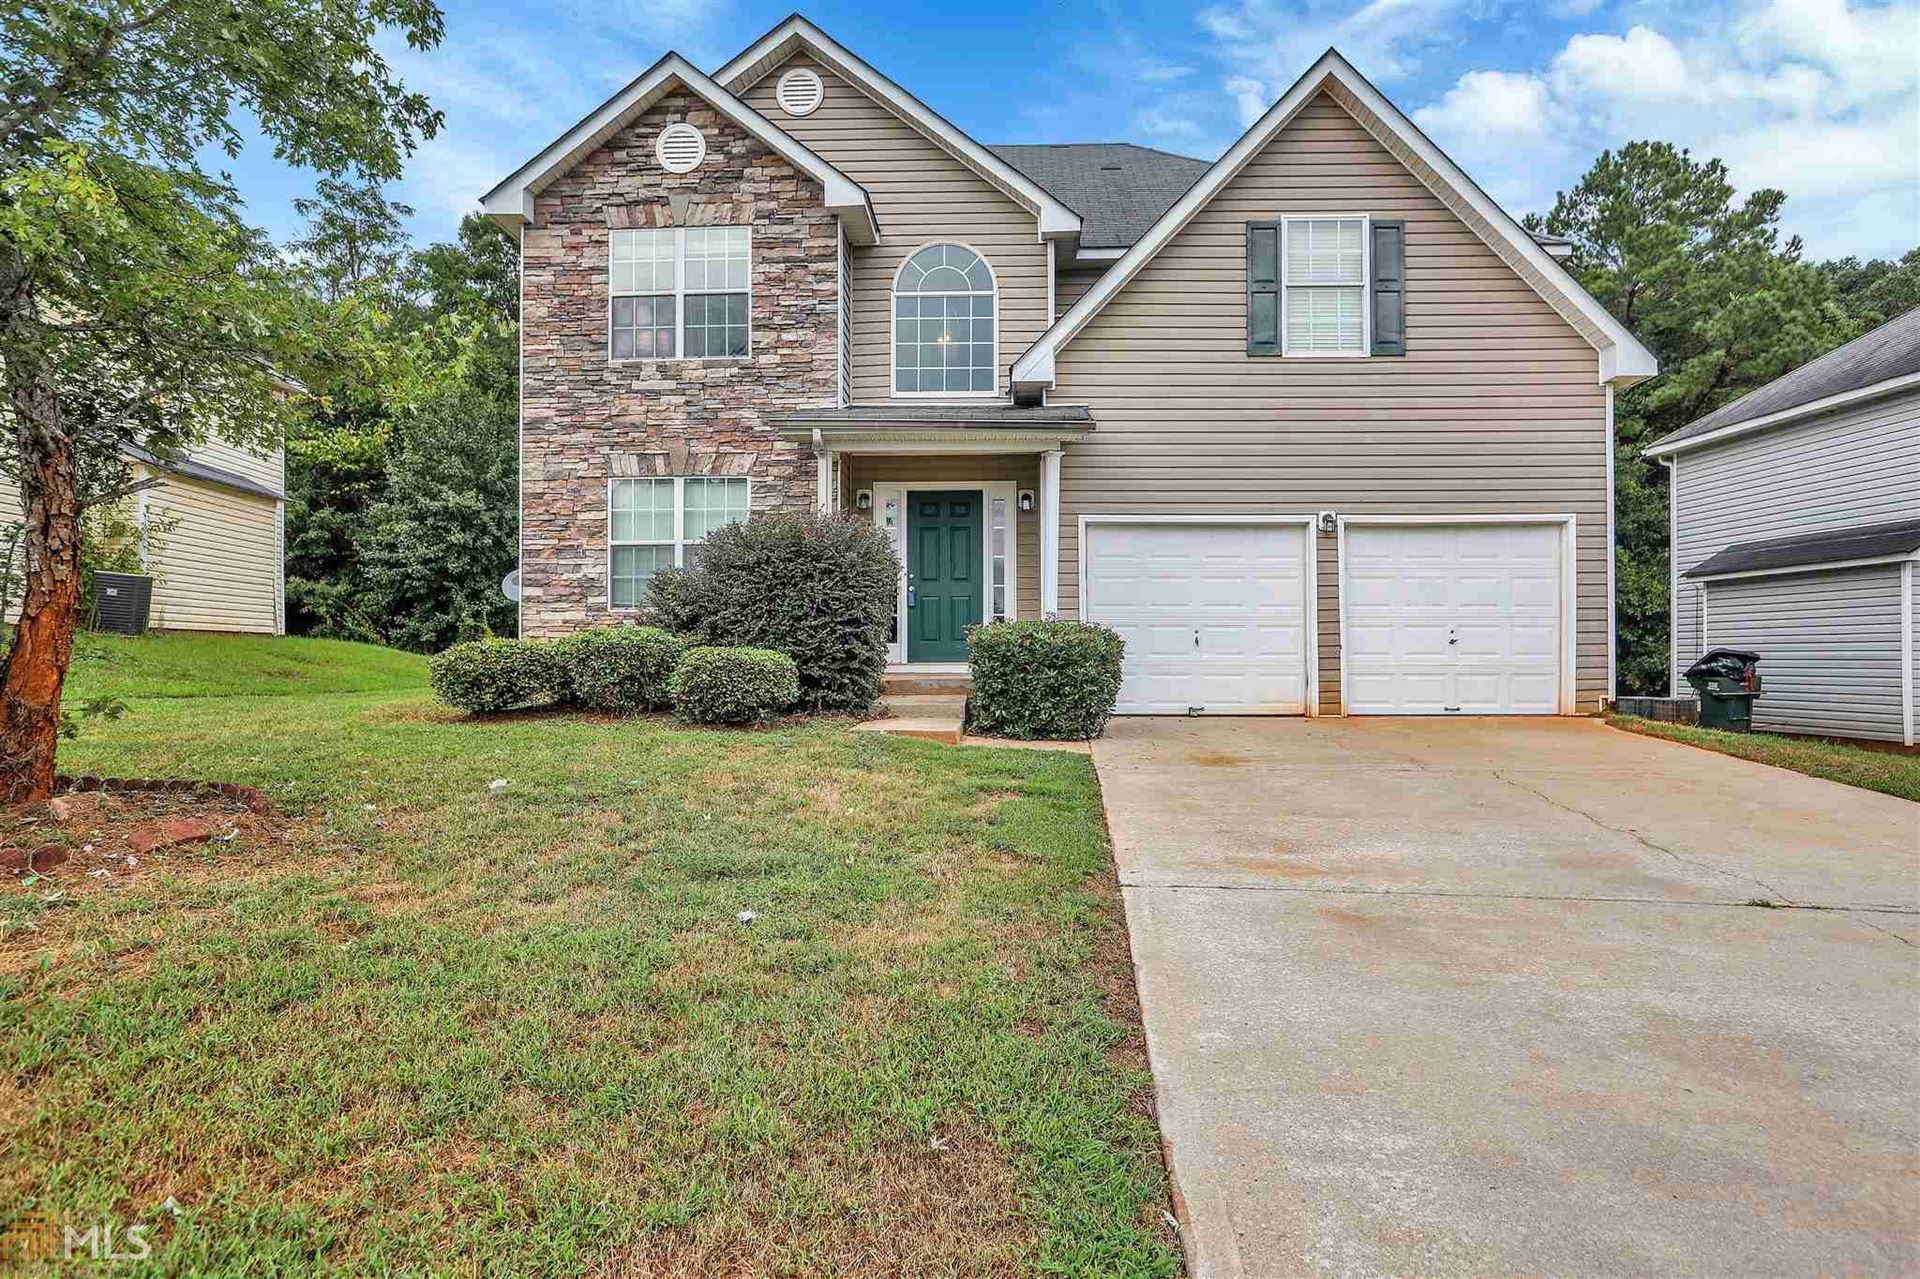 70 Carrington Cir, Covington, GA 30016 - #: 8858131